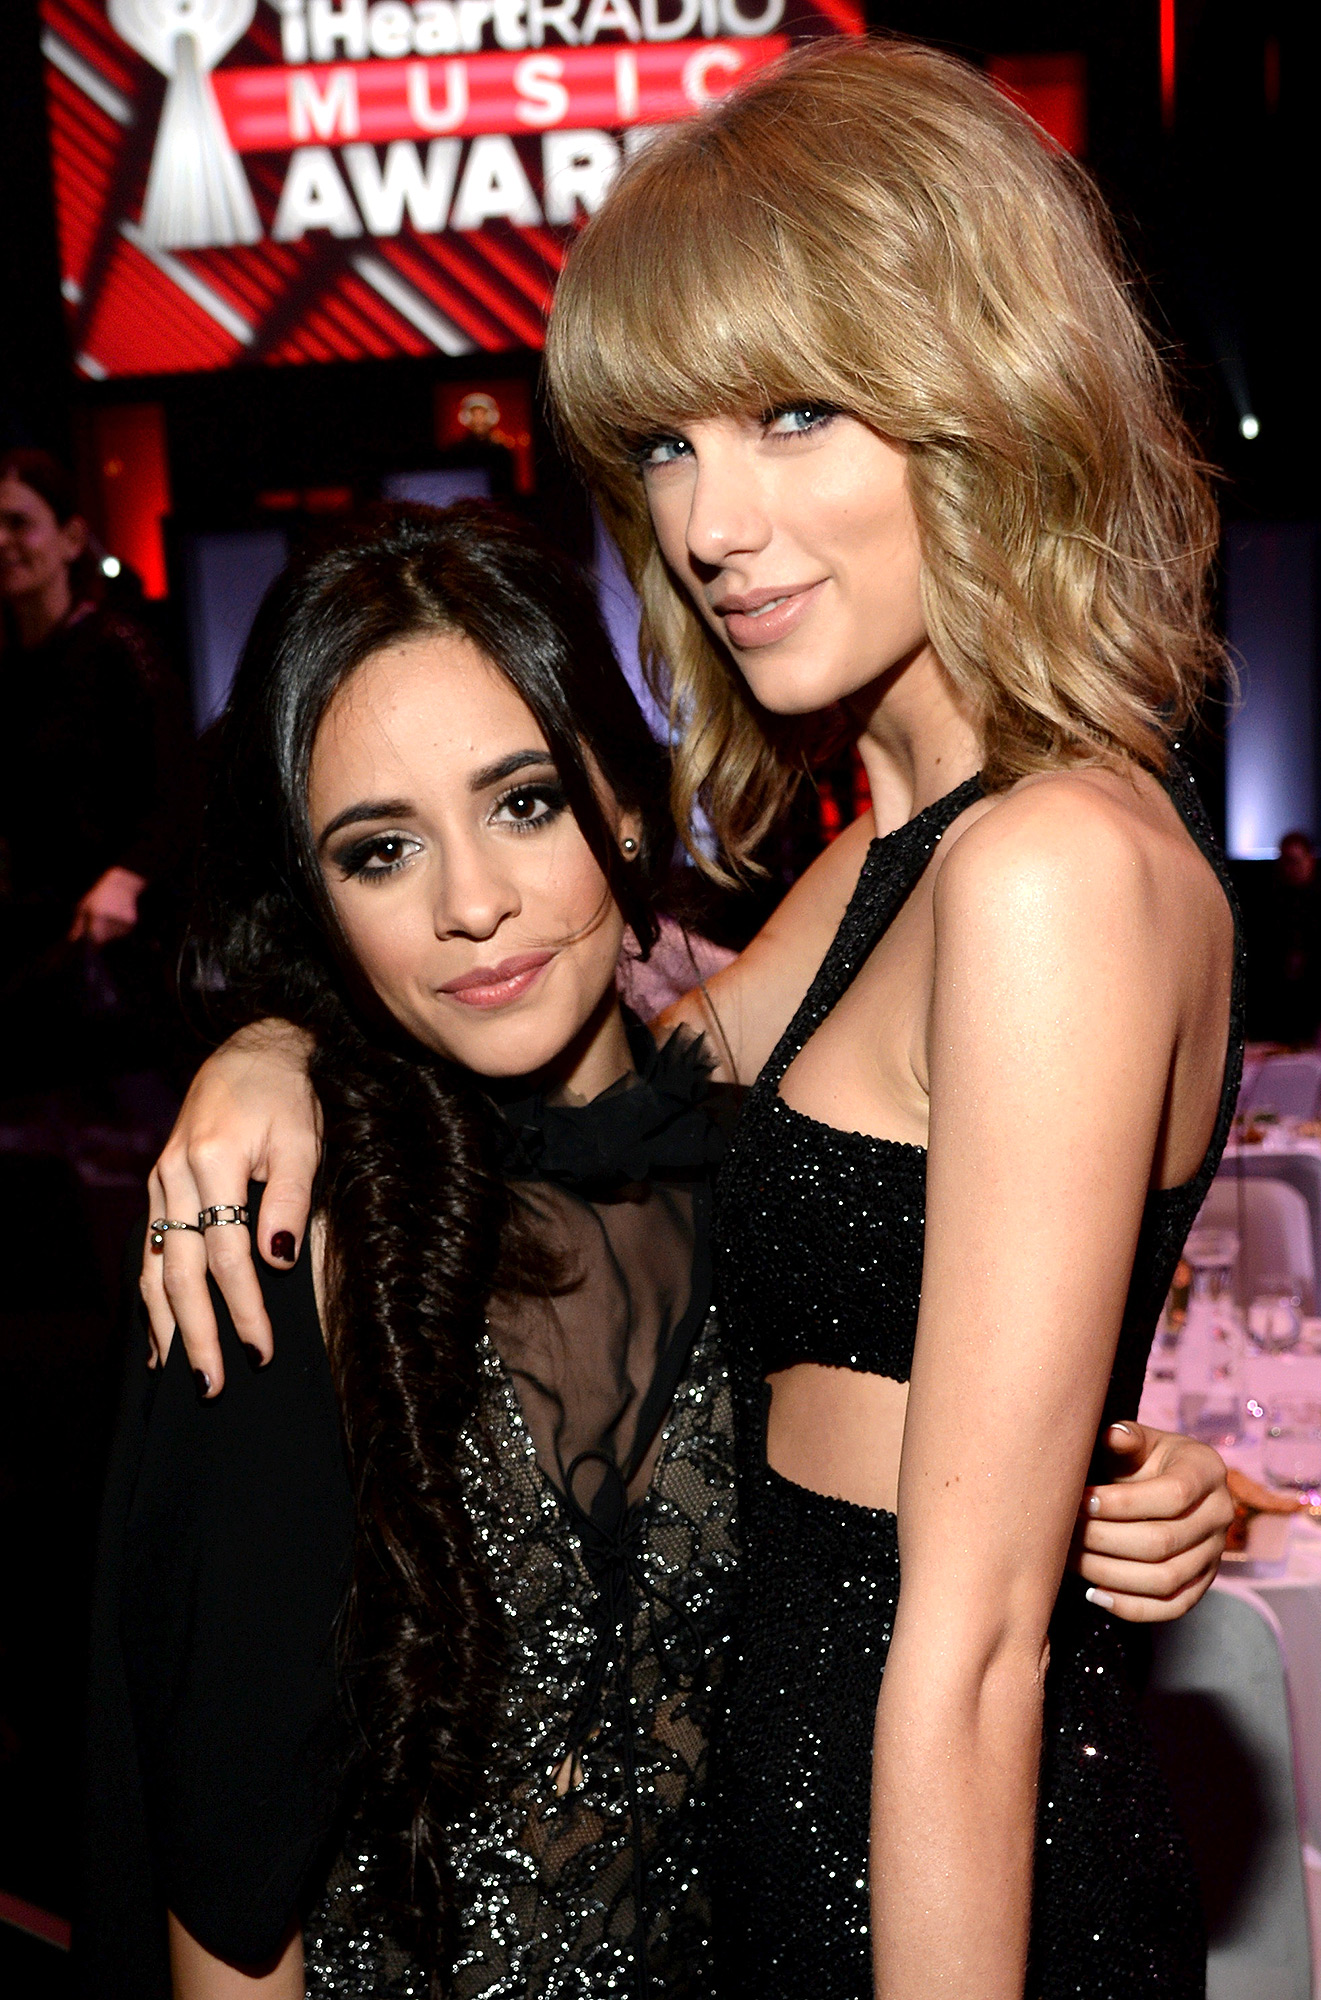 2015 iHeartRadio Music Awards On NBC - Backstage And Audience